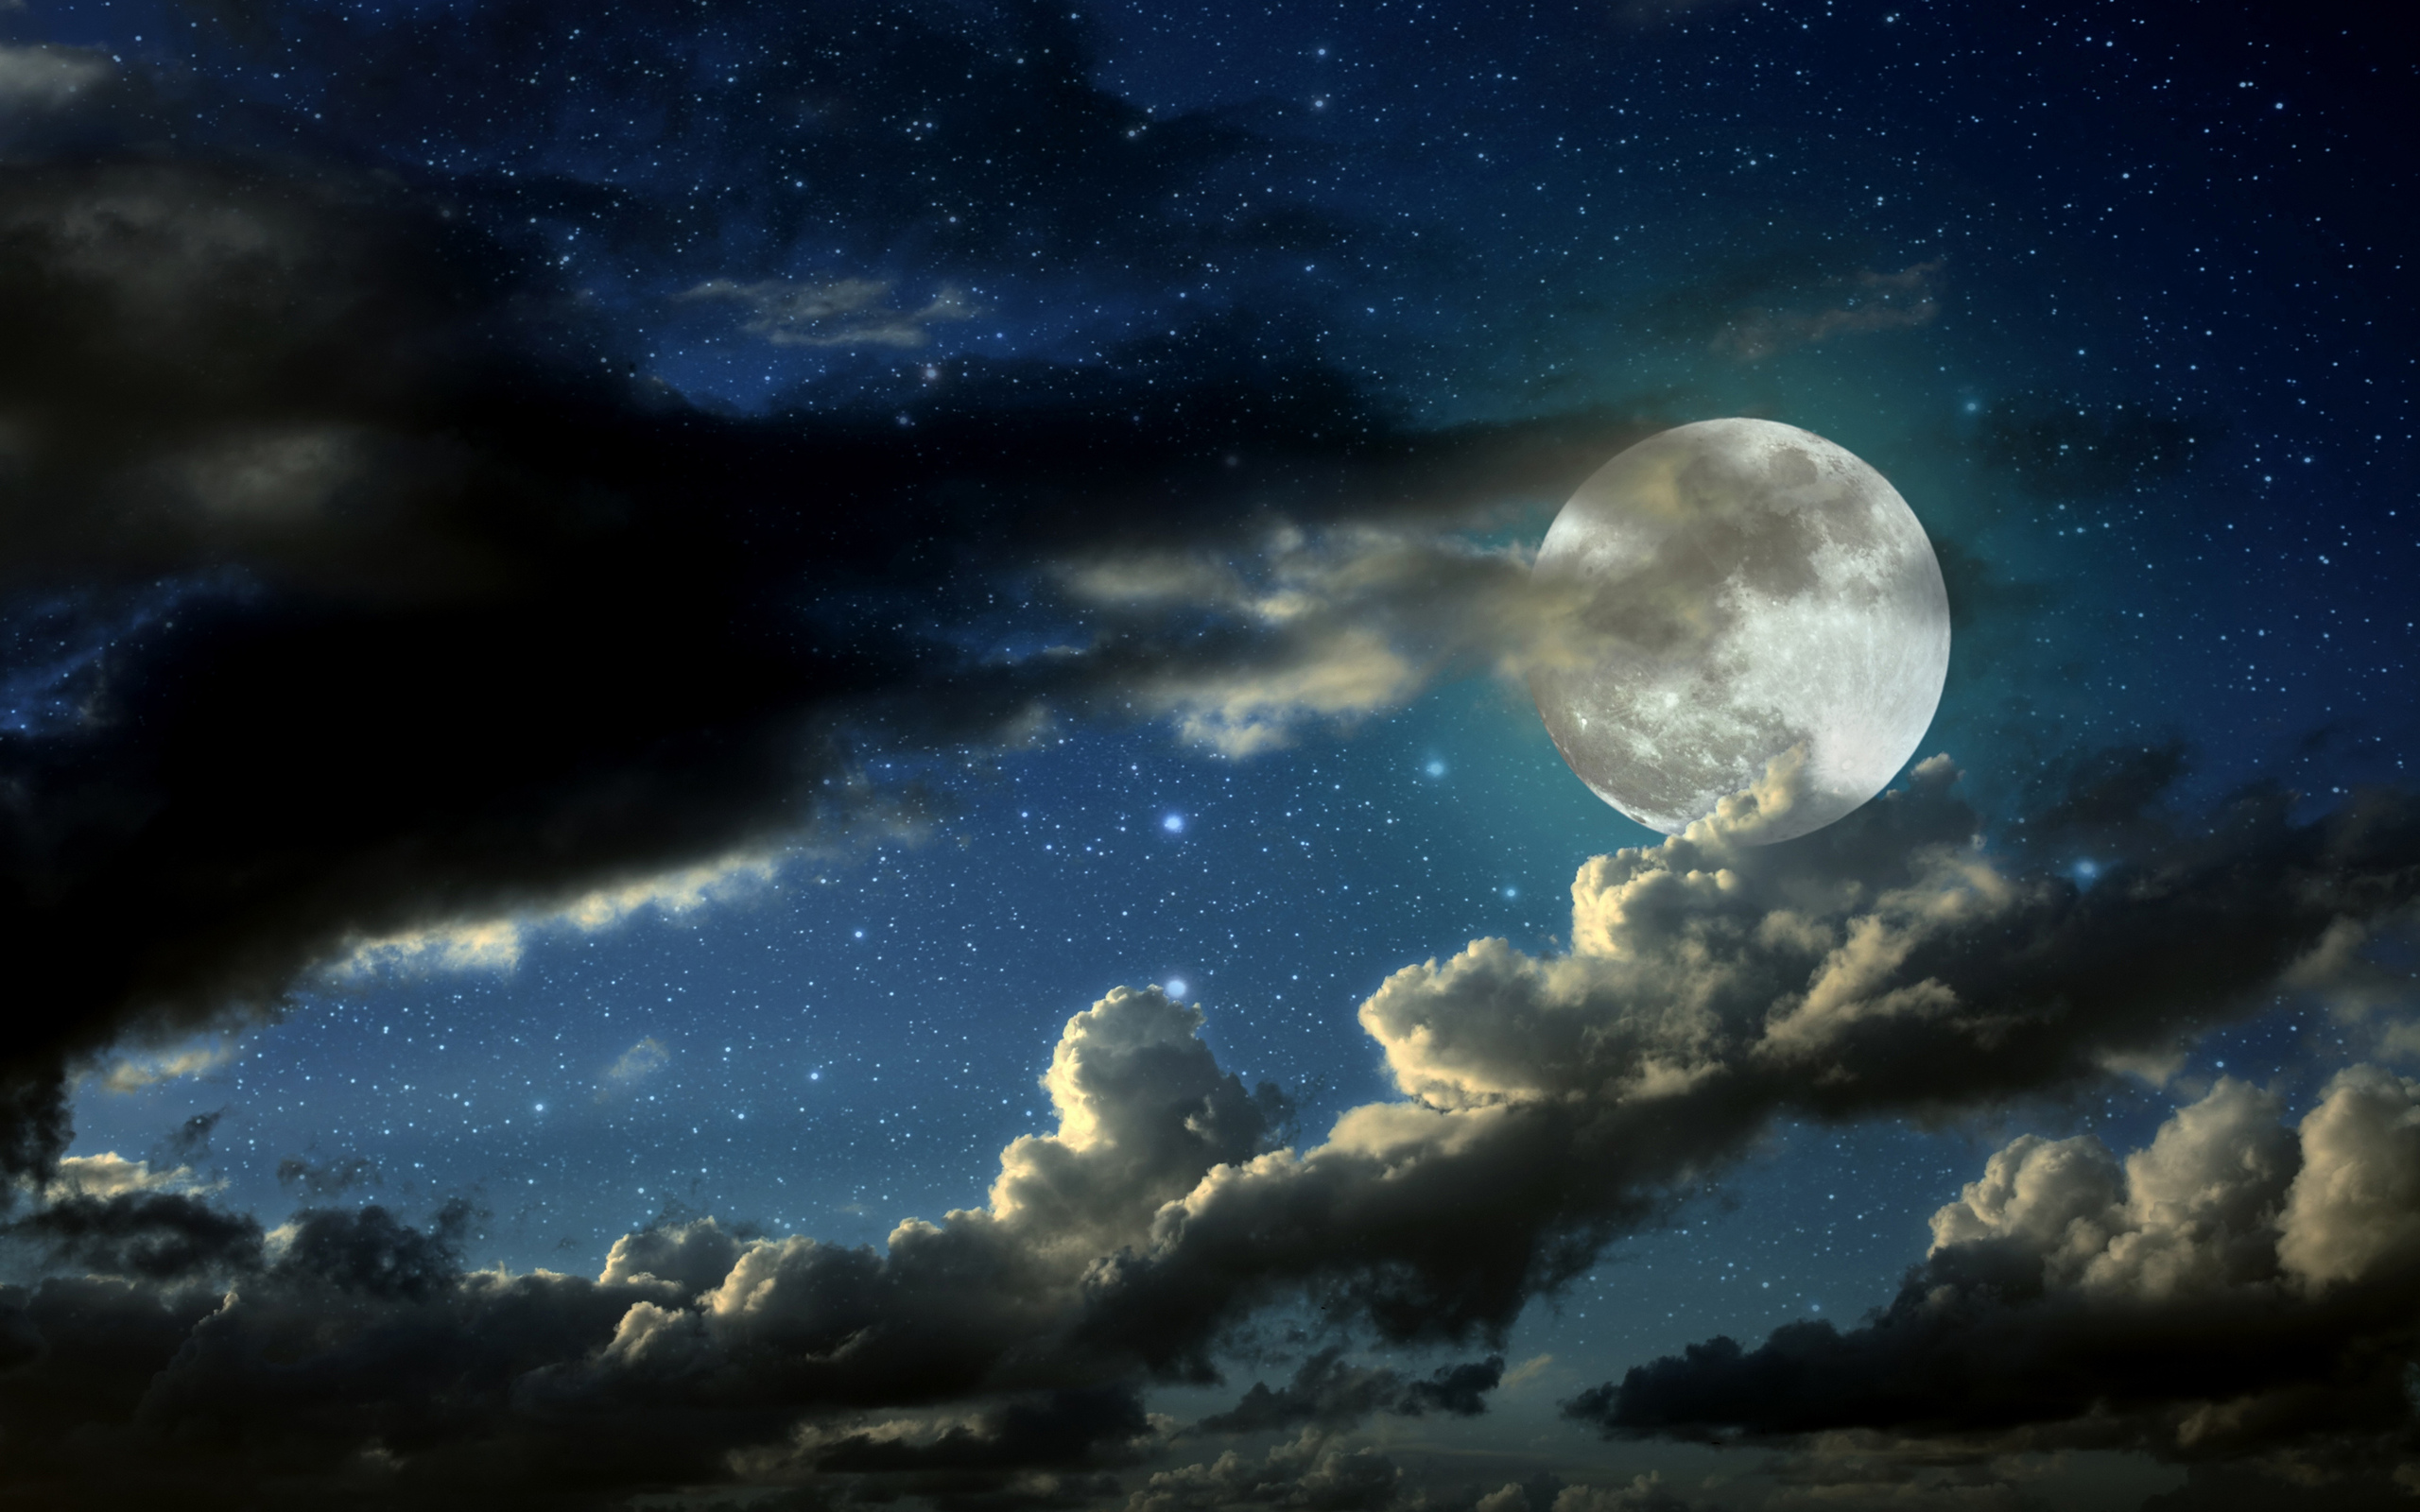 Free Download Nature Hd Wallpapers Night Sky Moon Stars Clouds Wallpaper 2560x1600 For Your Desktop Mobile Tablet Explore 43 Wallpaper Stars Sky Night Stars At Night Wallpaper Winter Night